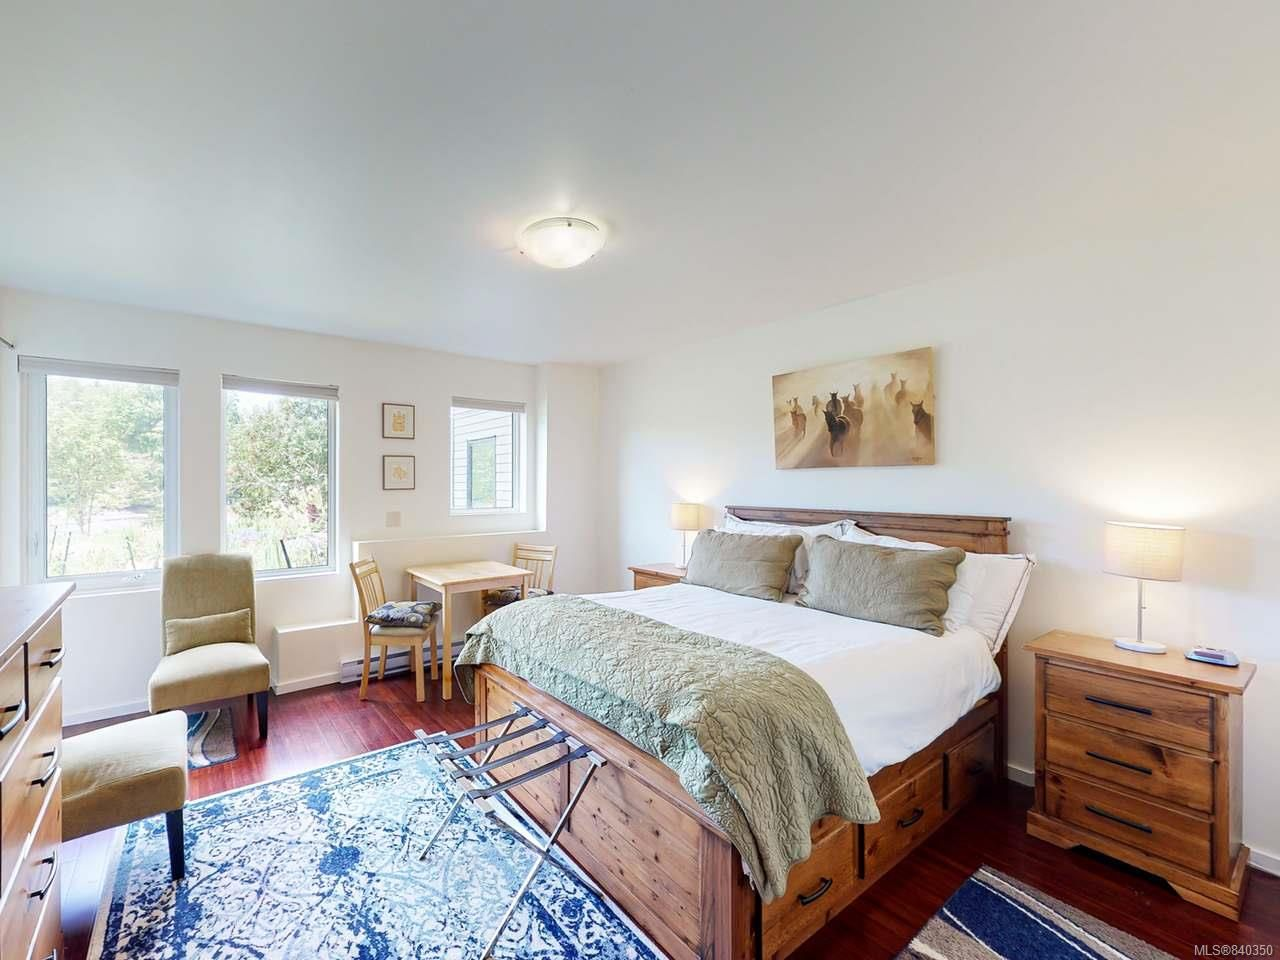 Photo 32: Photos: 1068 Helen Rd in UCLUELET: PA Ucluelet House for sale (Port Alberni)  : MLS®# 840350